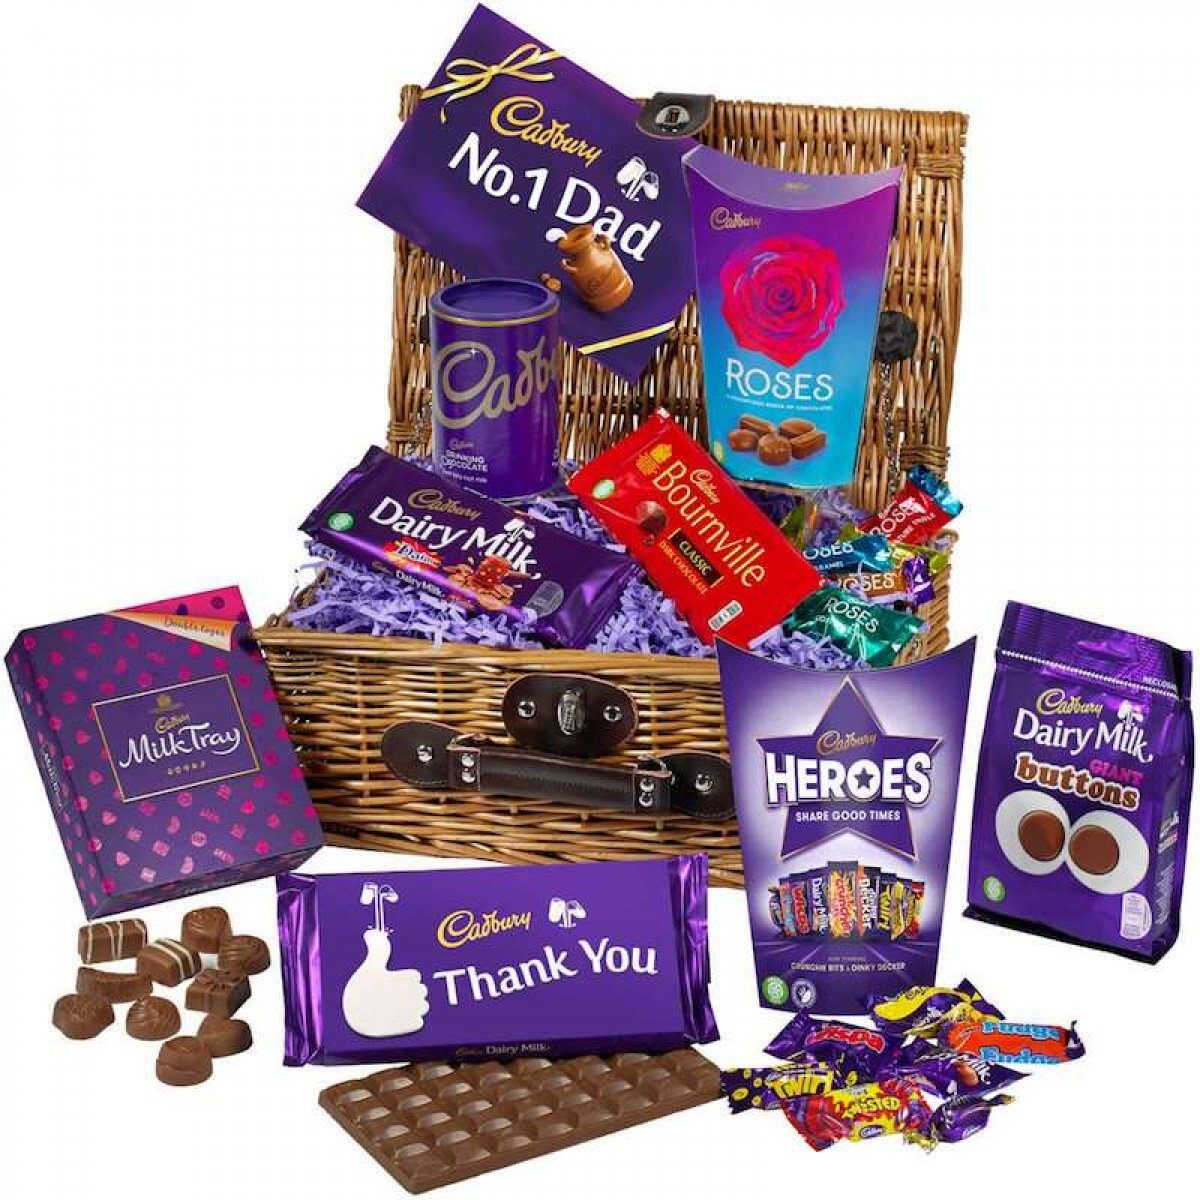 Cadbury Father's Day gift ideas personalised